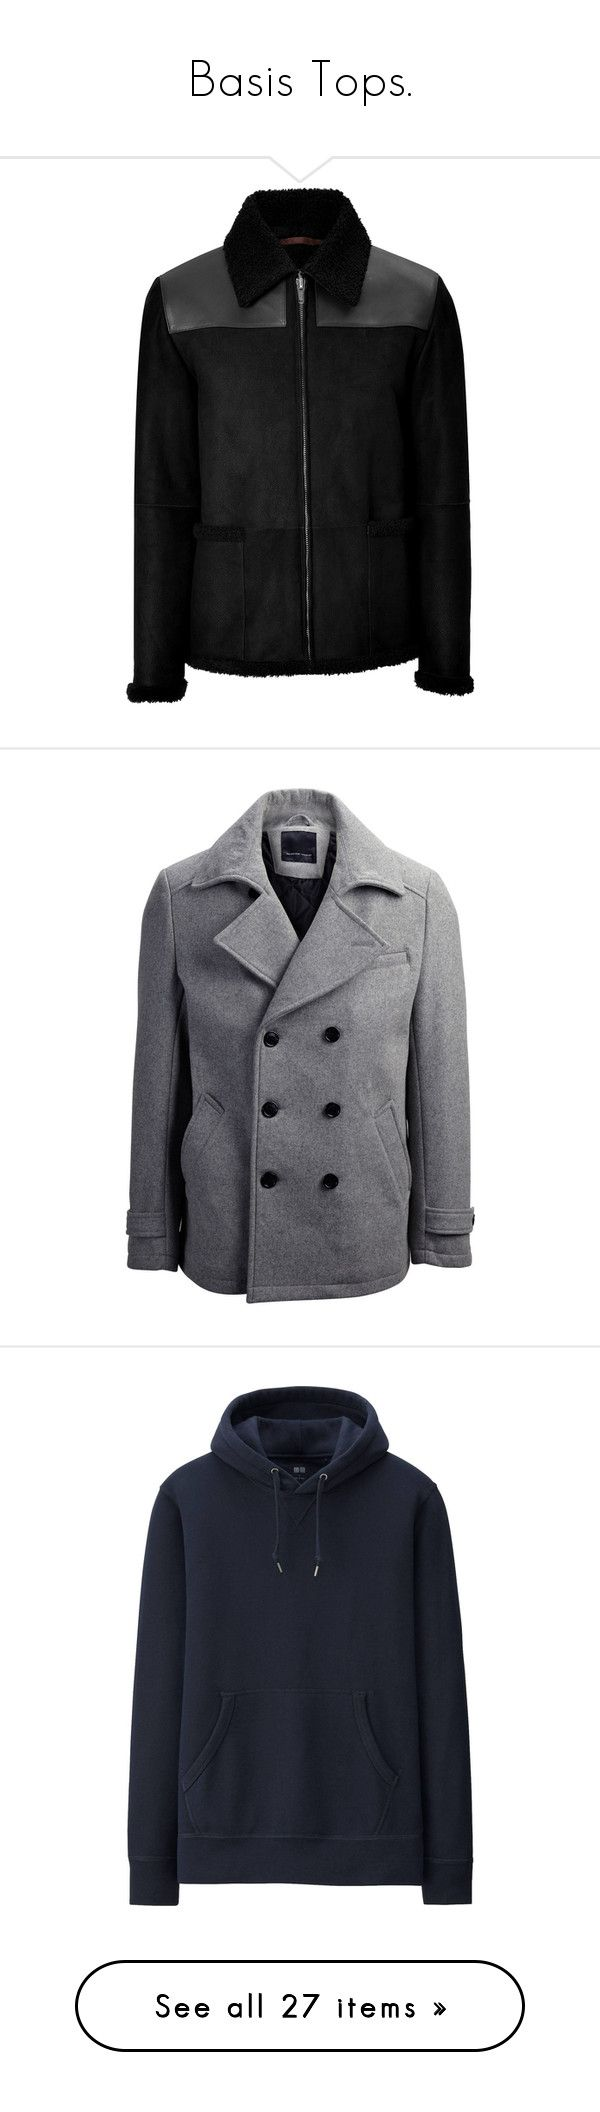 """""""Basis Tops."""" by manclothig ❤ liked on Polyvore featuring men's fashion, men's clothing, men's outerwear, men's jackets, mens shearling leather jacket, mens shearling jacket, mens leather jackets, black, mens waterproof jacket and mens parka"""